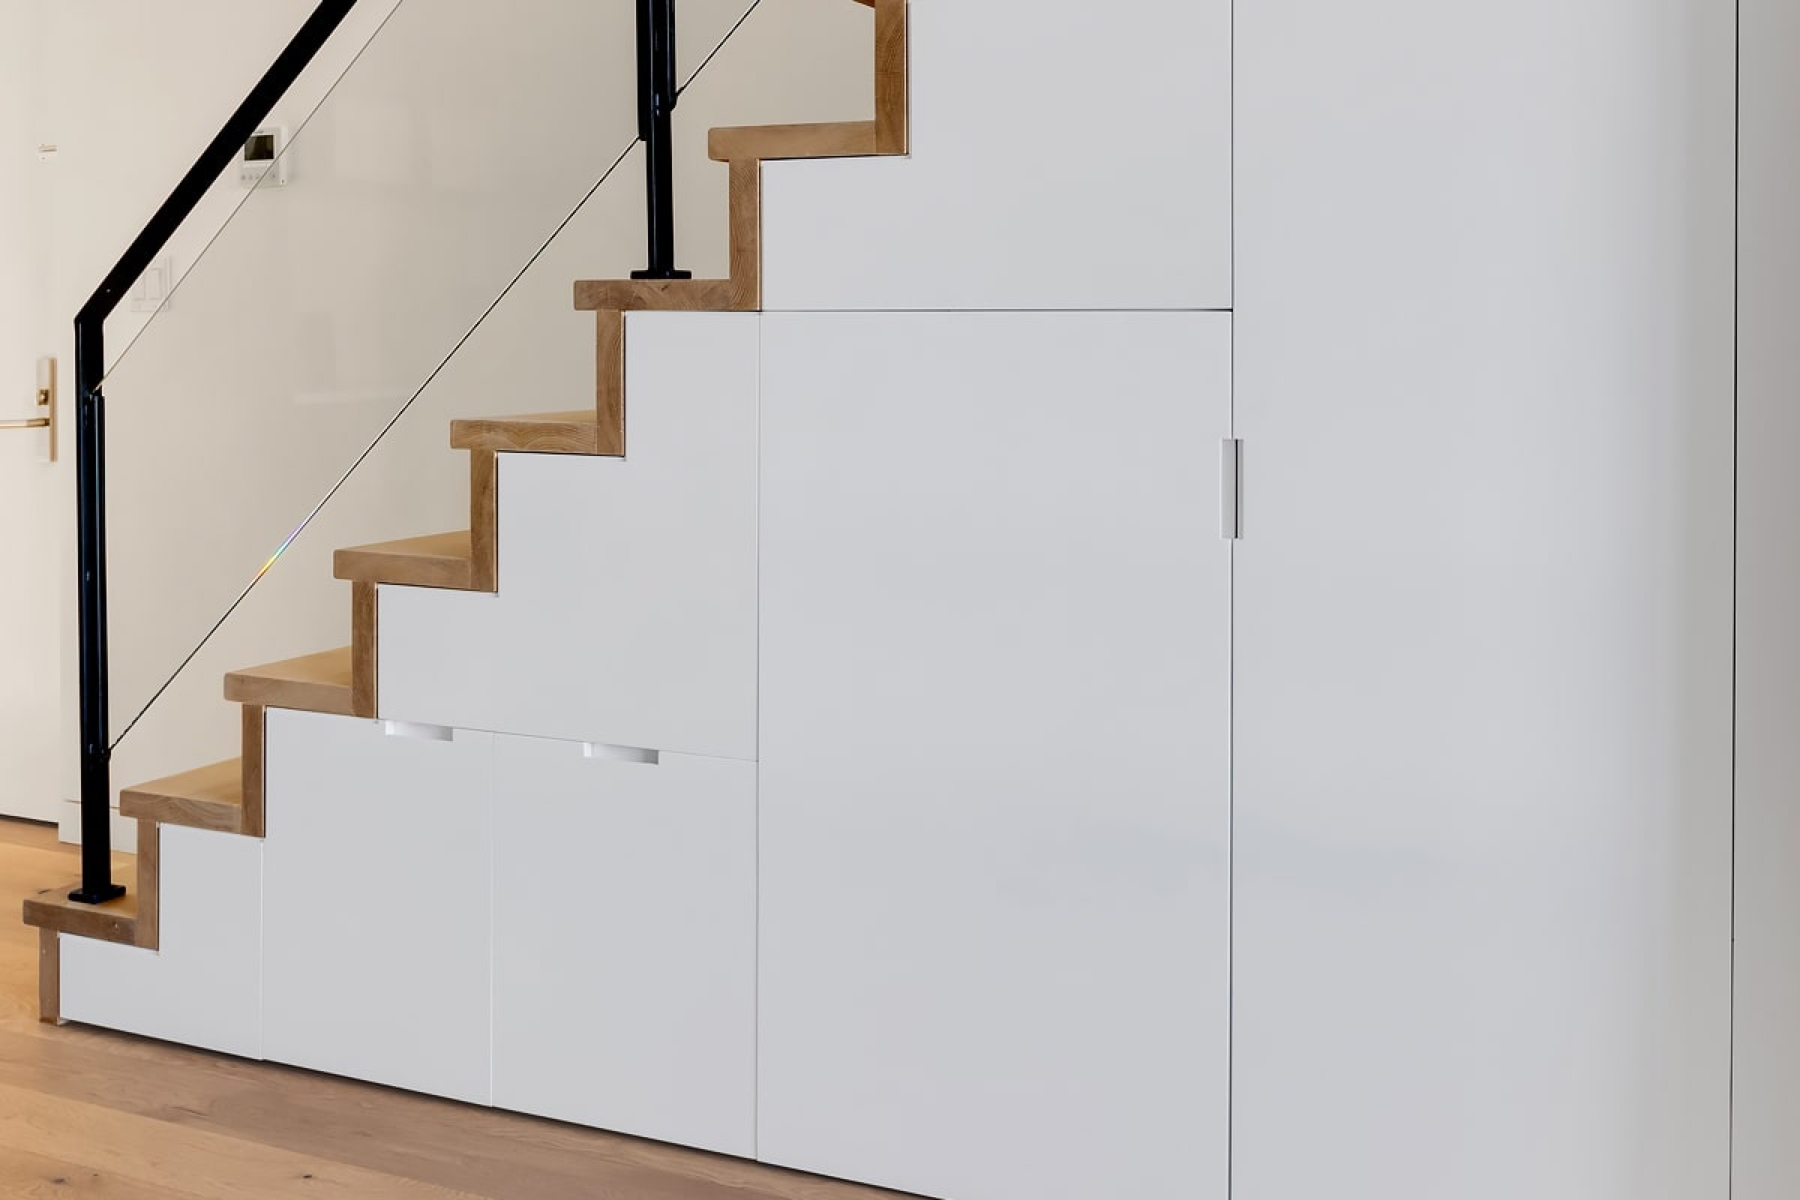 83 Eagle staircase with storage